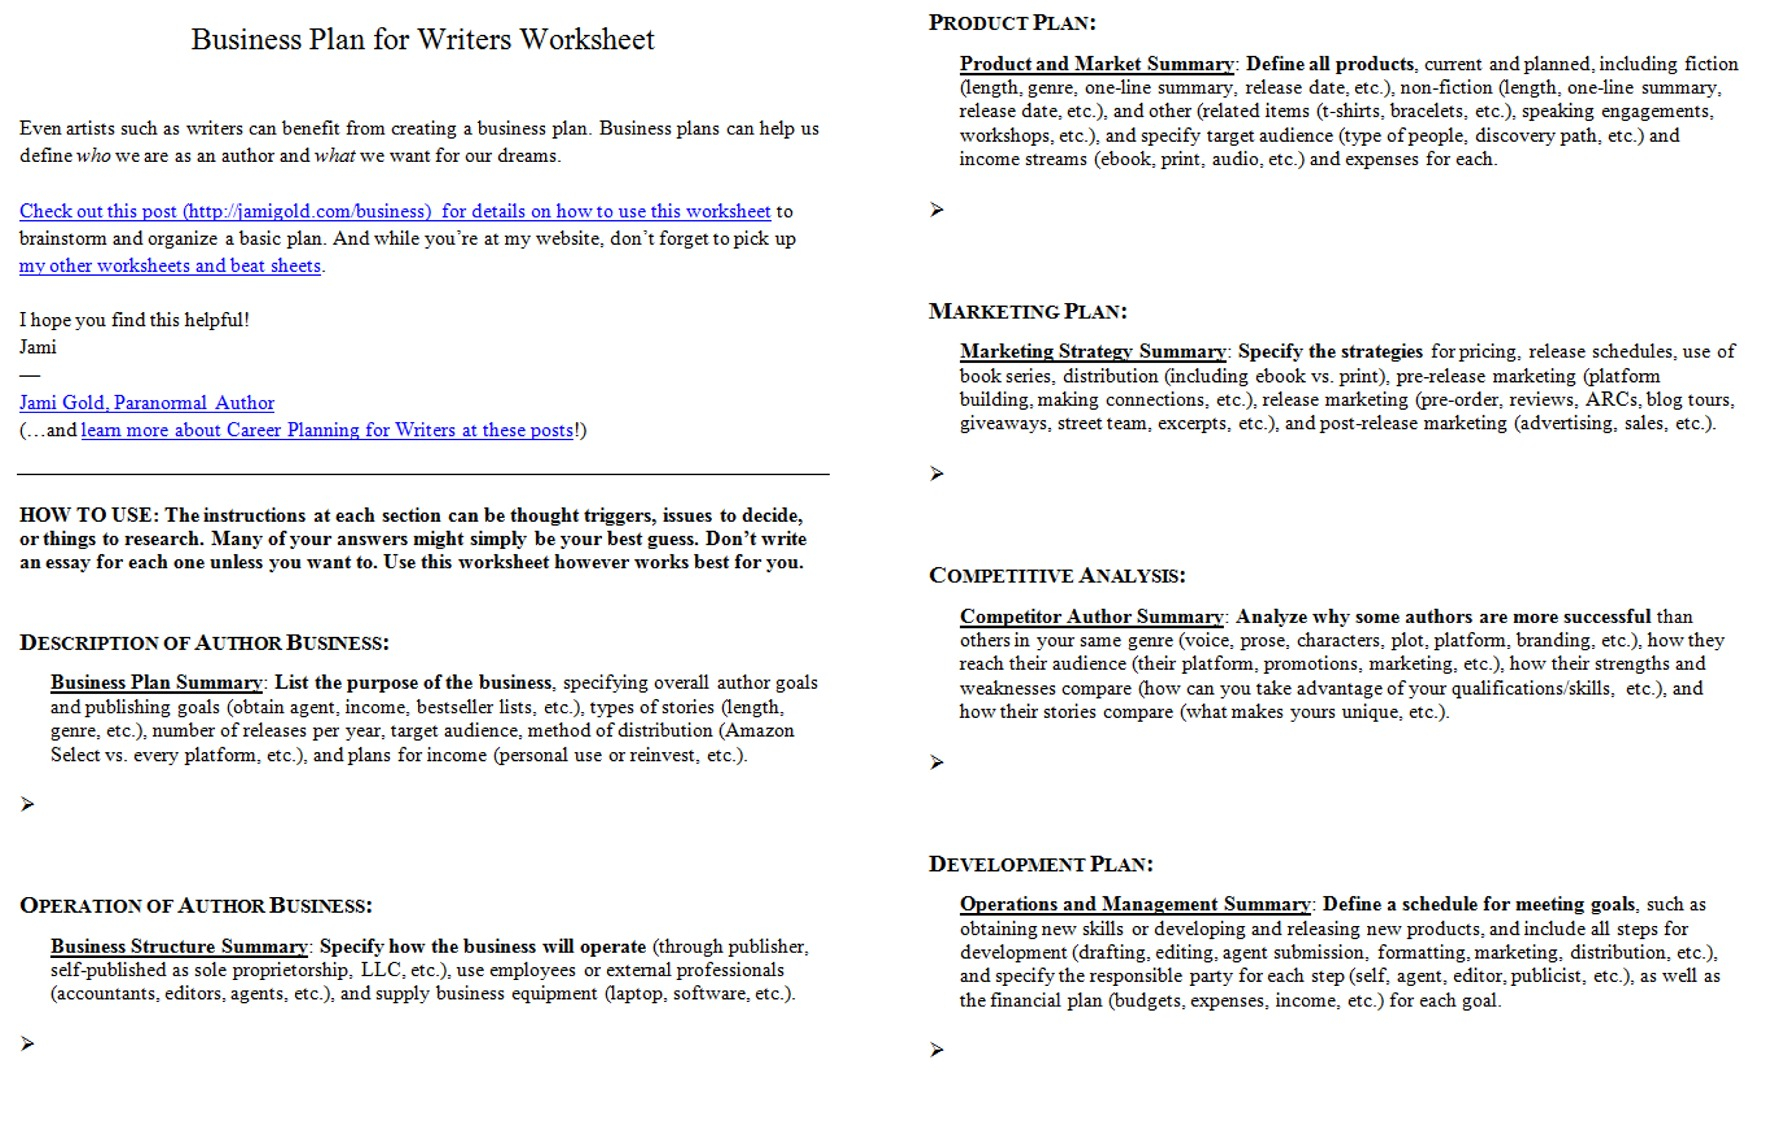 Weirdmailus  Remarkable Worksheets For Writers  Jami Gold Paranormal Author With Marvelous Screen Shot Of Both Pages Of The Business Plan For Writers Worksheet With Easy On The Eye South America Worksheets For Kids Also Worksheets For Adhd In Addition Ordinal Numbers Worksheet Esl And Th Grade Reading Comprehension Worksheet As Well As James And The Giant Peach Worksheets Printables Additionally Ordering Numbers  To  Worksheets From Jamigoldcom With Weirdmailus  Marvelous Worksheets For Writers  Jami Gold Paranormal Author With Easy On The Eye Screen Shot Of Both Pages Of The Business Plan For Writers Worksheet And Remarkable South America Worksheets For Kids Also Worksheets For Adhd In Addition Ordinal Numbers Worksheet Esl From Jamigoldcom